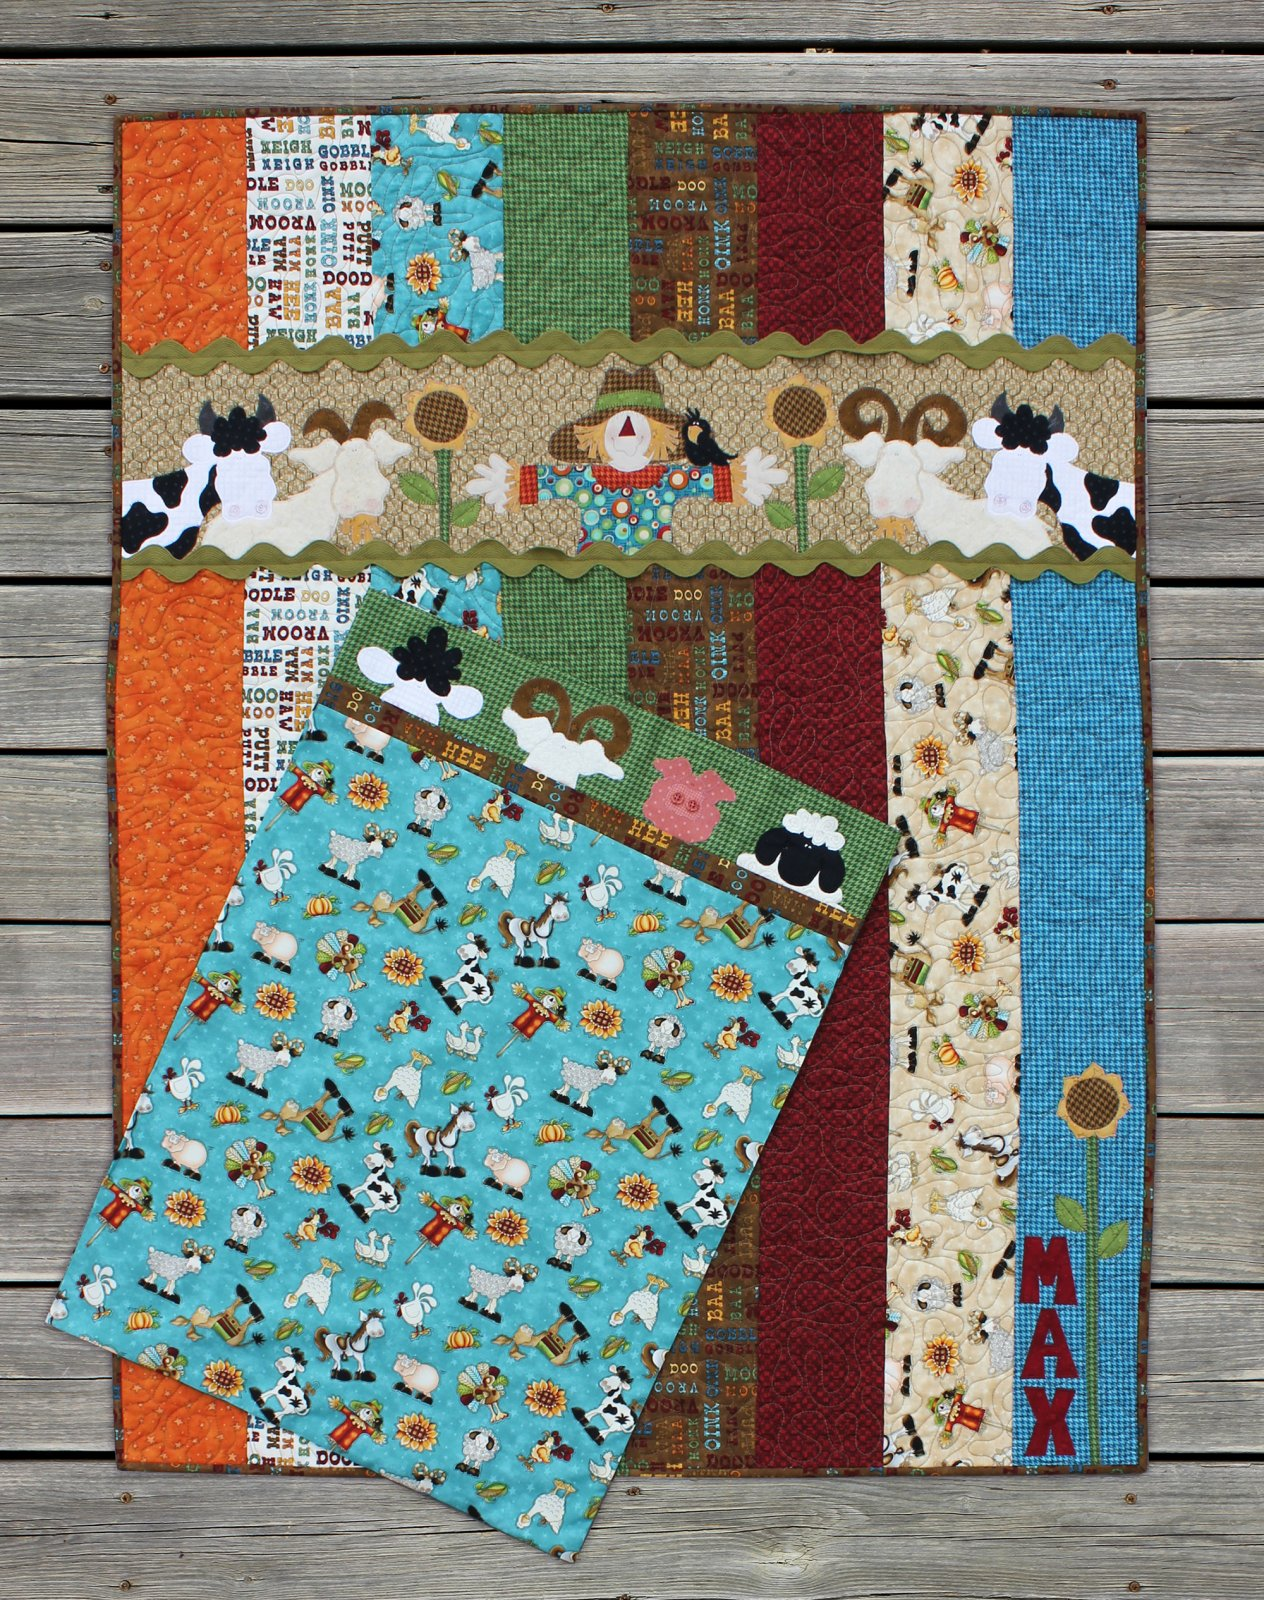 quilt htm p happiness kits kit jonge de jacqueline by